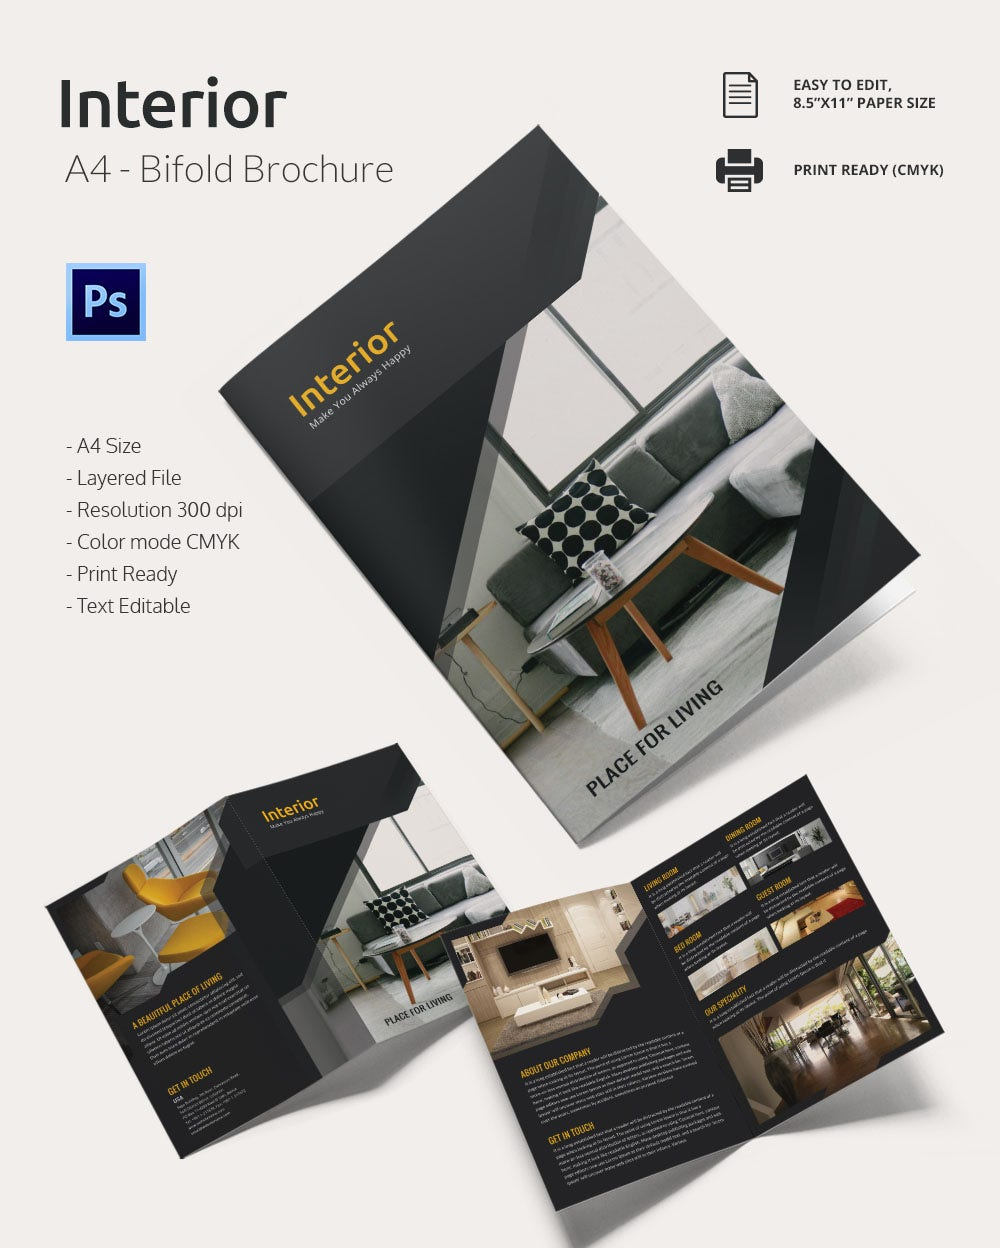 17 interior decoration brochure free word psd pdf for Interior design layout templates free